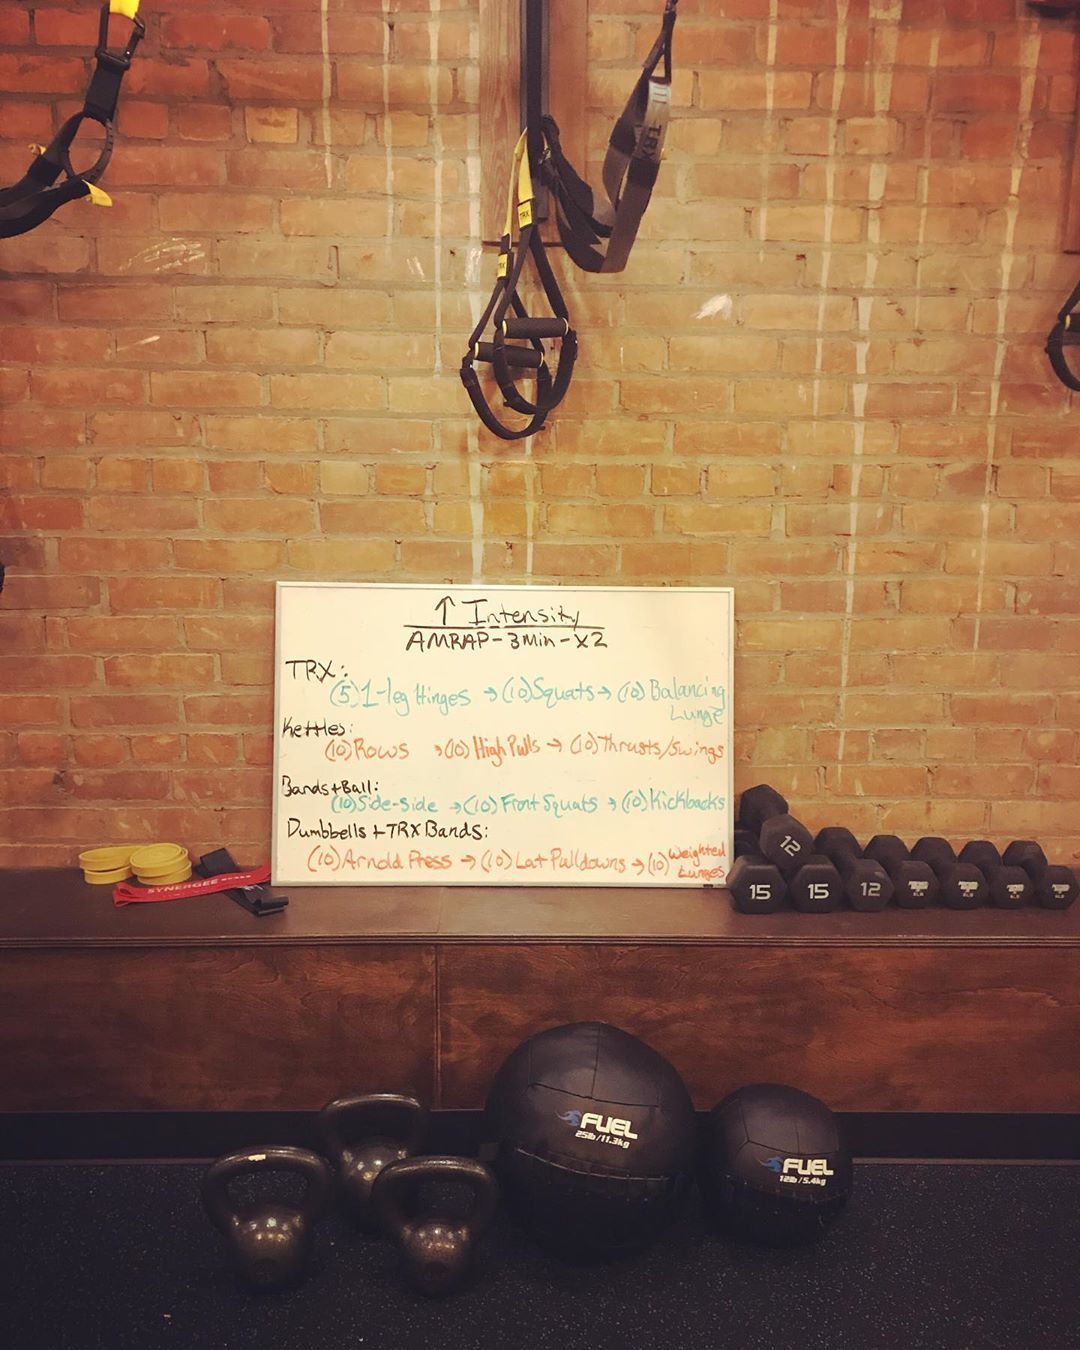 Full Body Strength  Tu/Th 5:45 am @livecycledelight  Get up, get at it, get strong! Tap into your be...